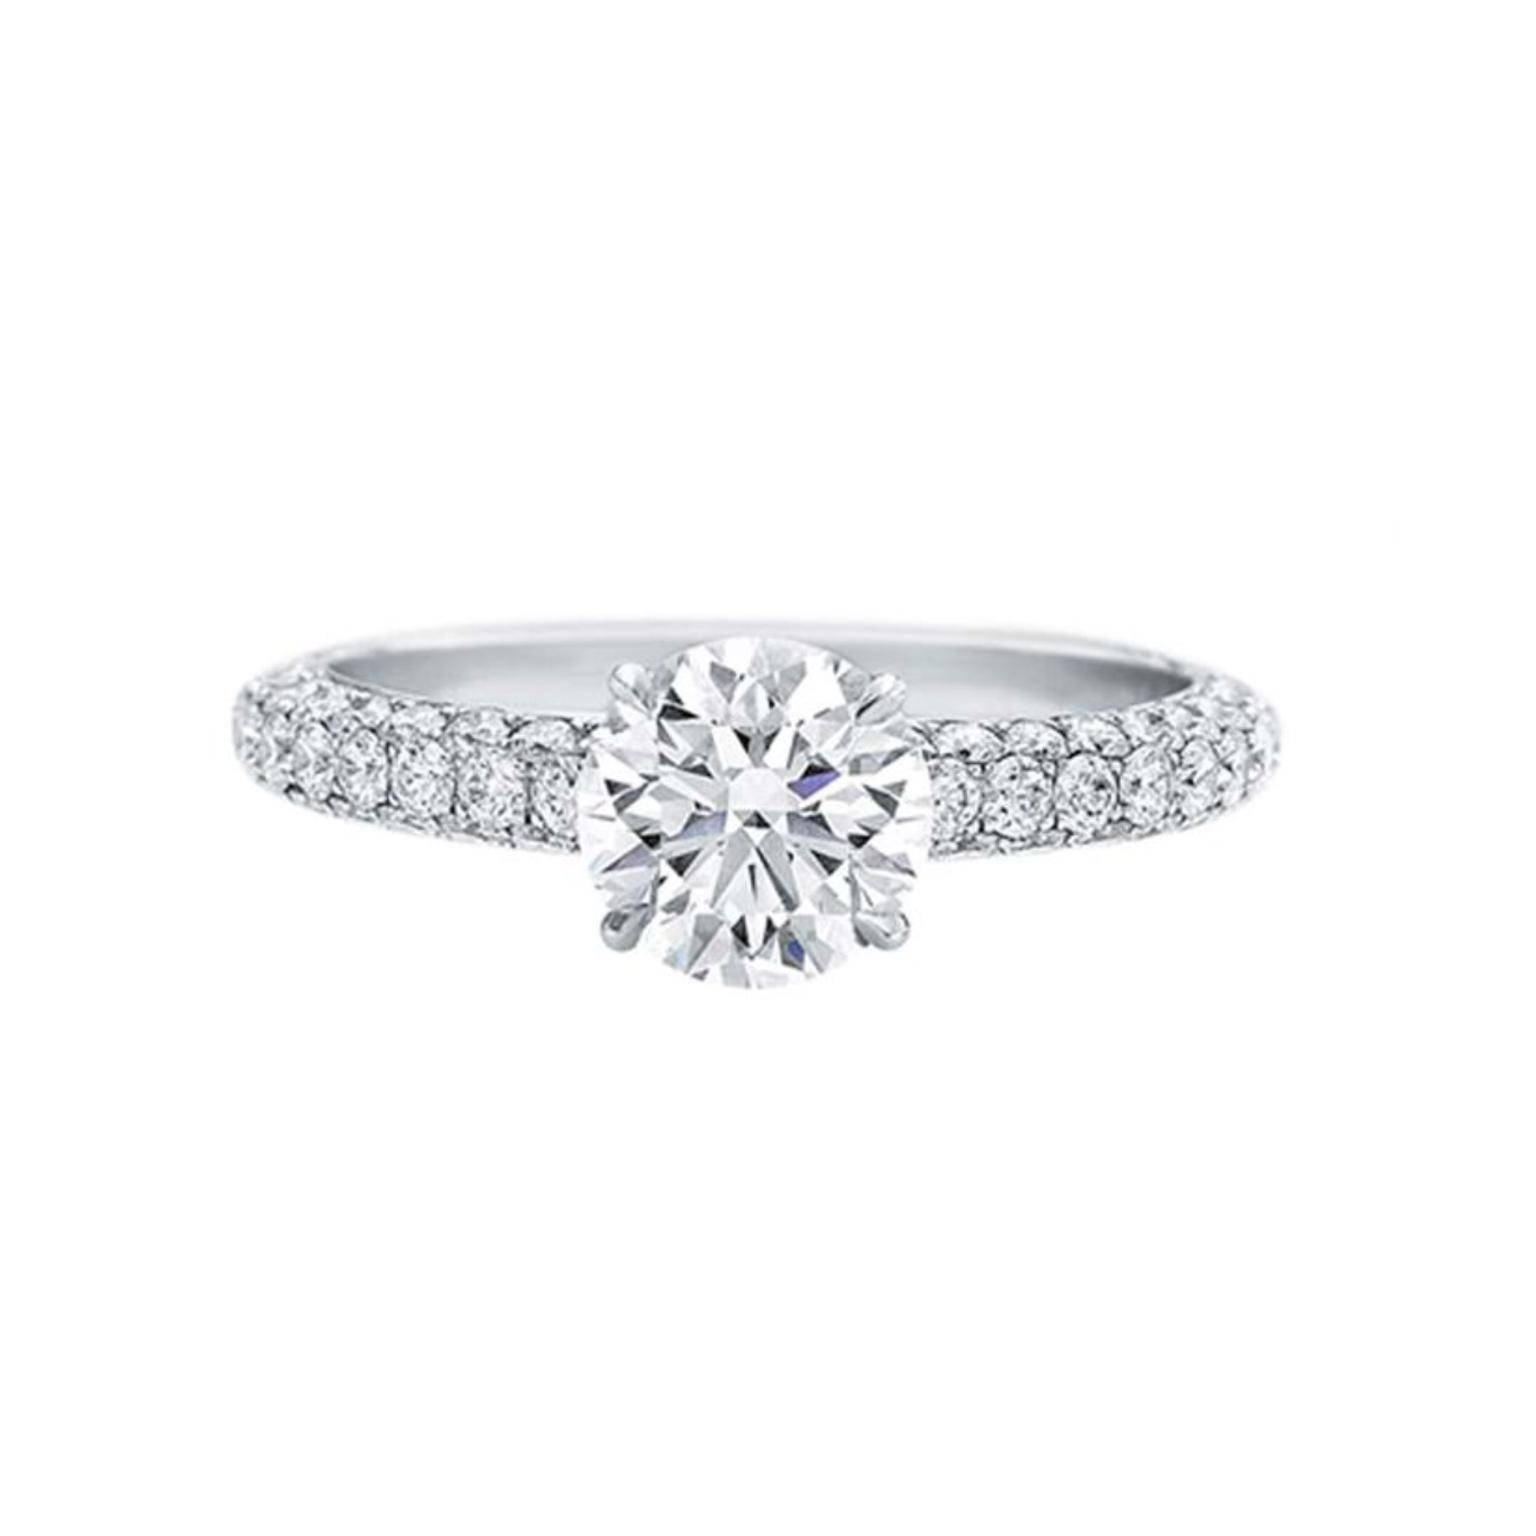 Attraction 1.10 Carat Diamond Engagement Ring | Harry Winston Pertaining To Harry Winston Engagement Rings (Gallery 5 of 15)